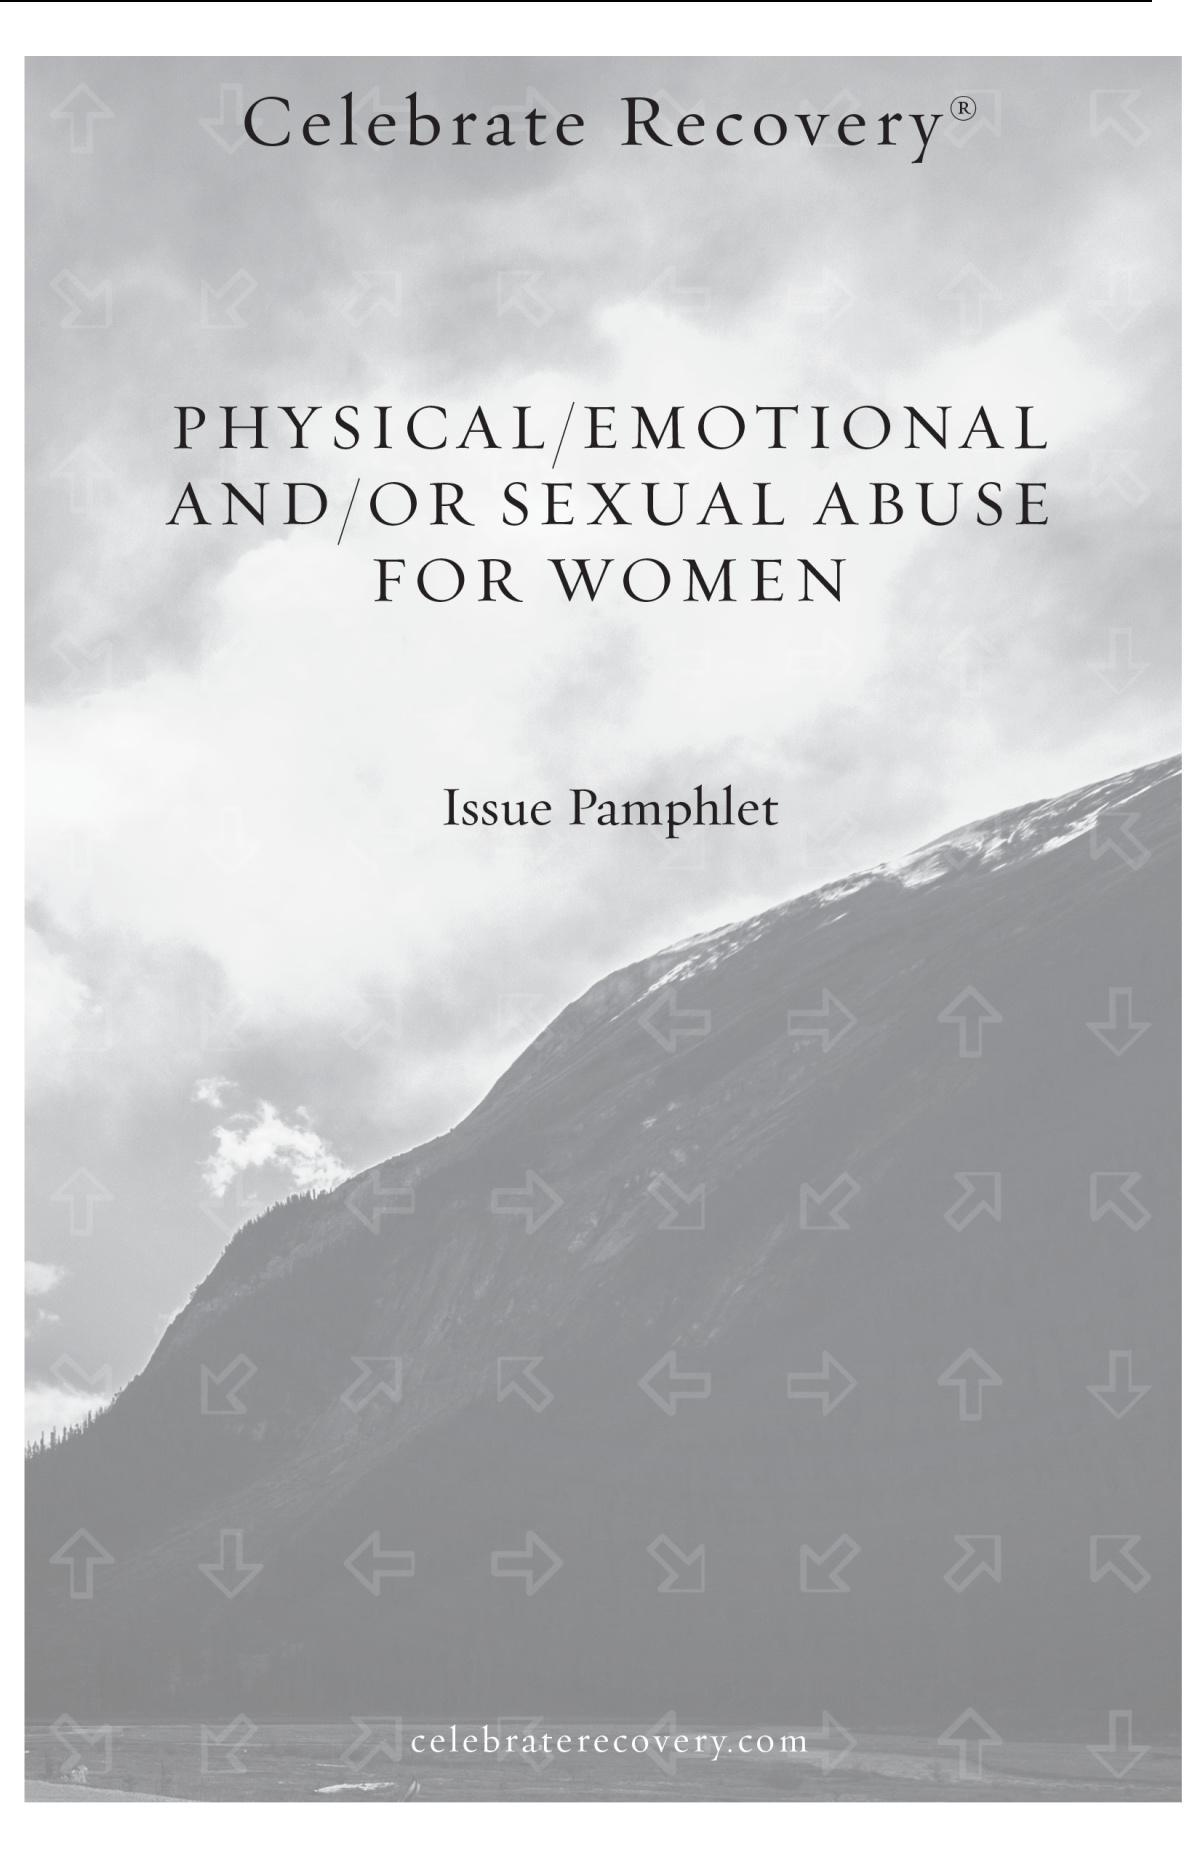 Physical/Emotional and/or Sexual Abuse for Women